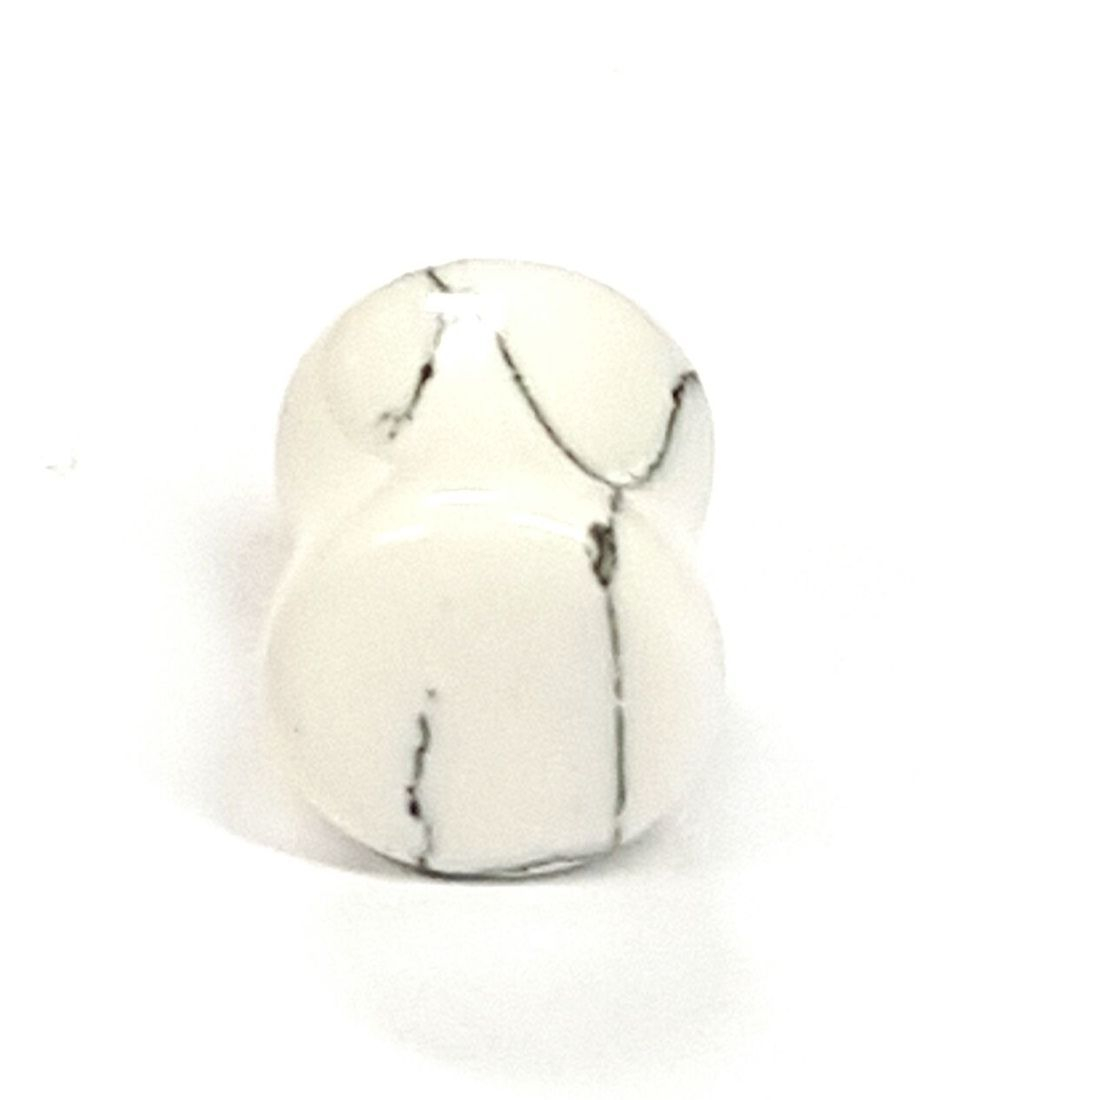 Howlite stone ear plug  available at Kazbah online or our Leicester City Centre store